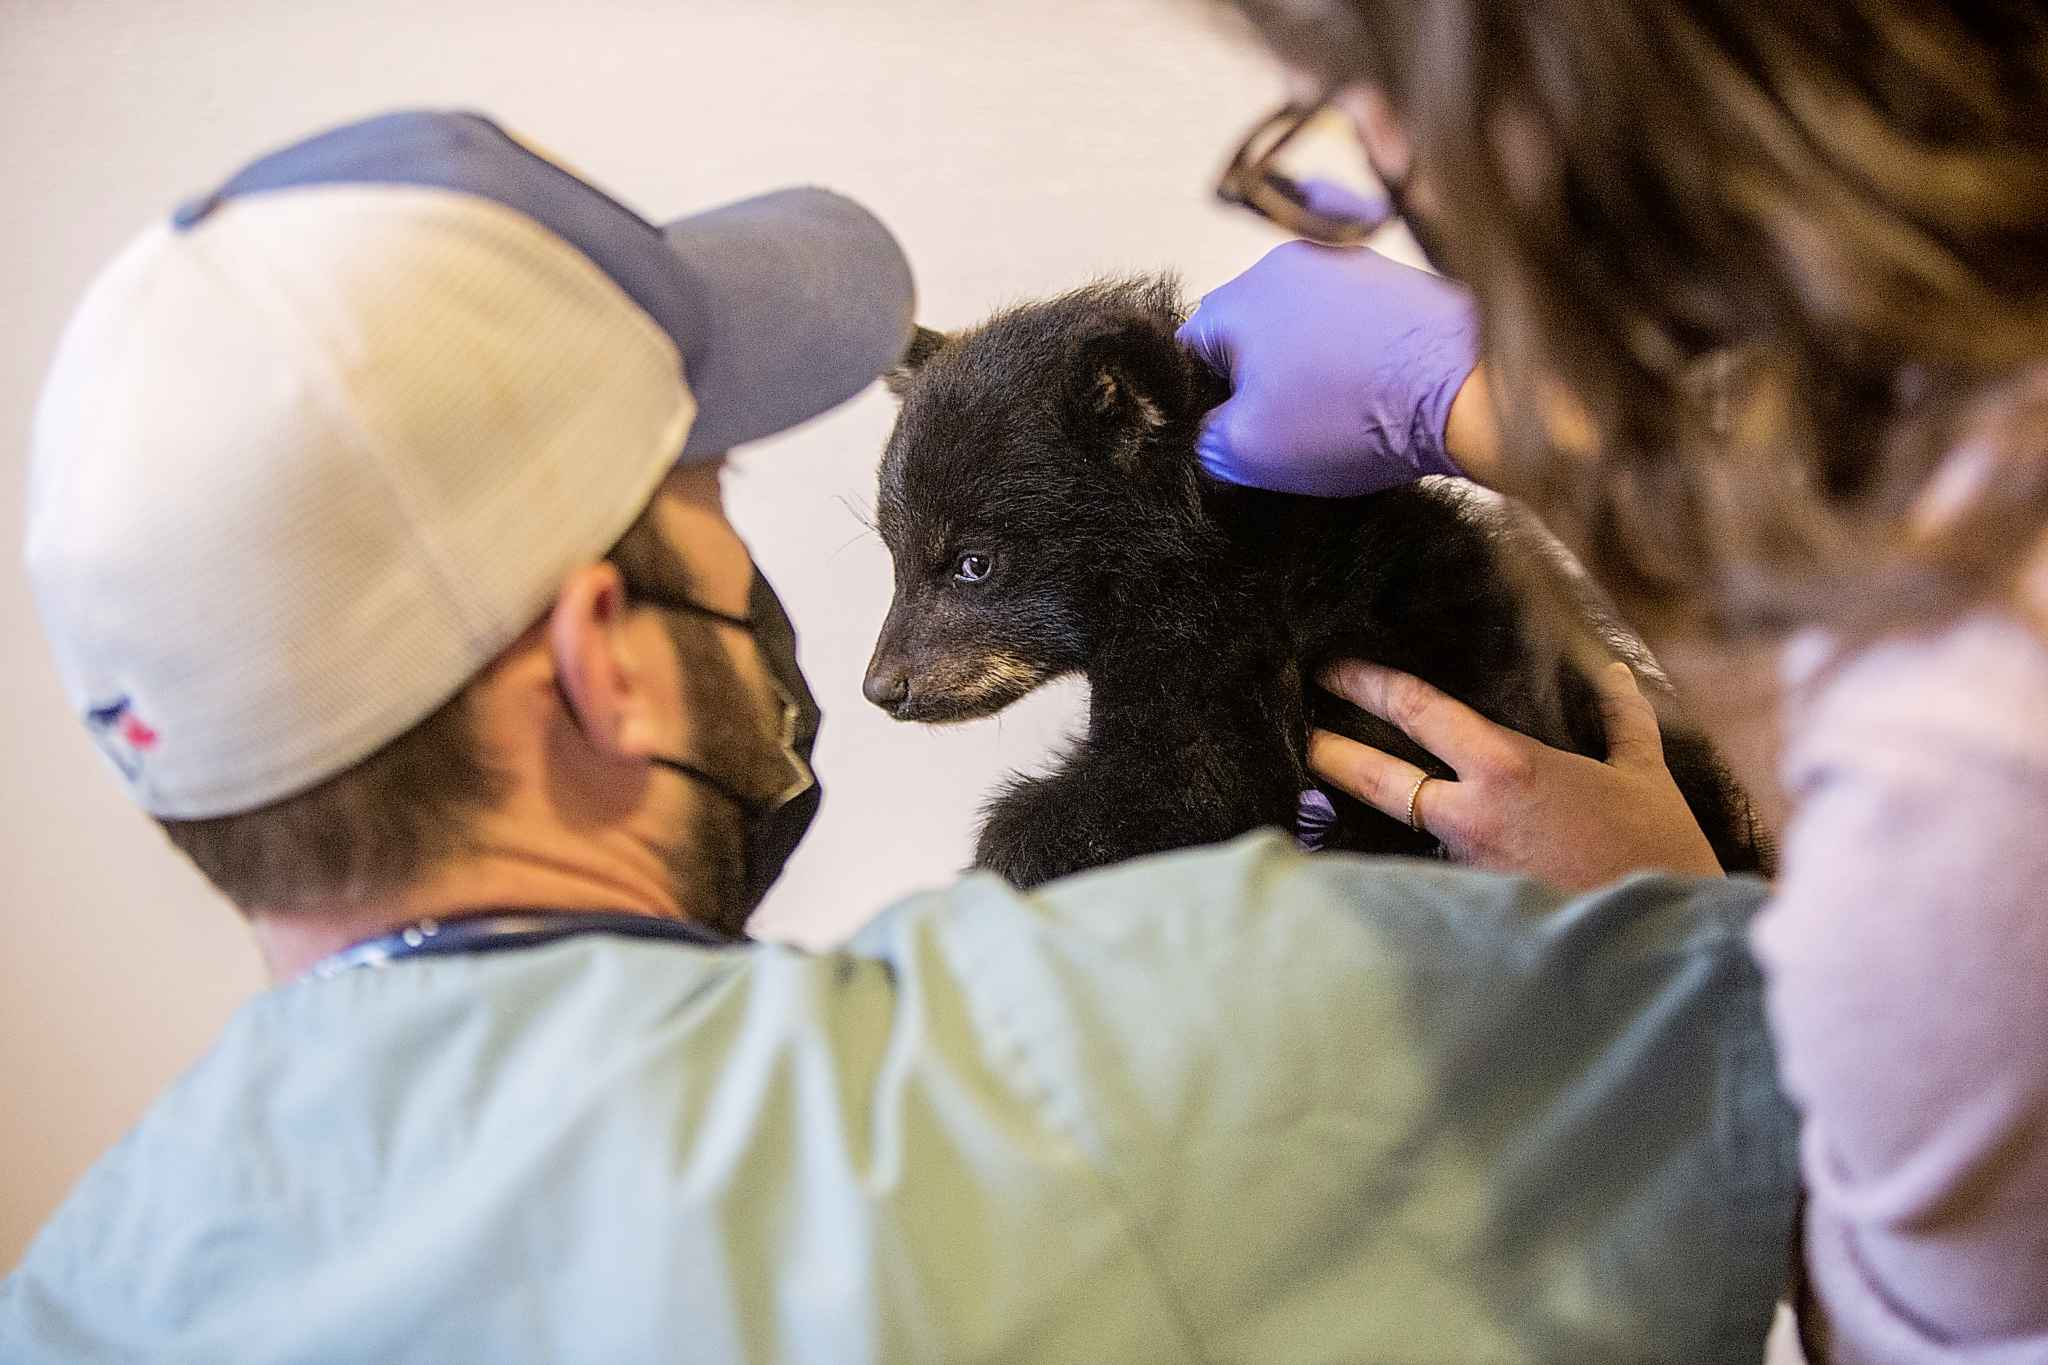 Veterinarian Justin Rosing and Fiona Mulhern do a check-up on the cub.